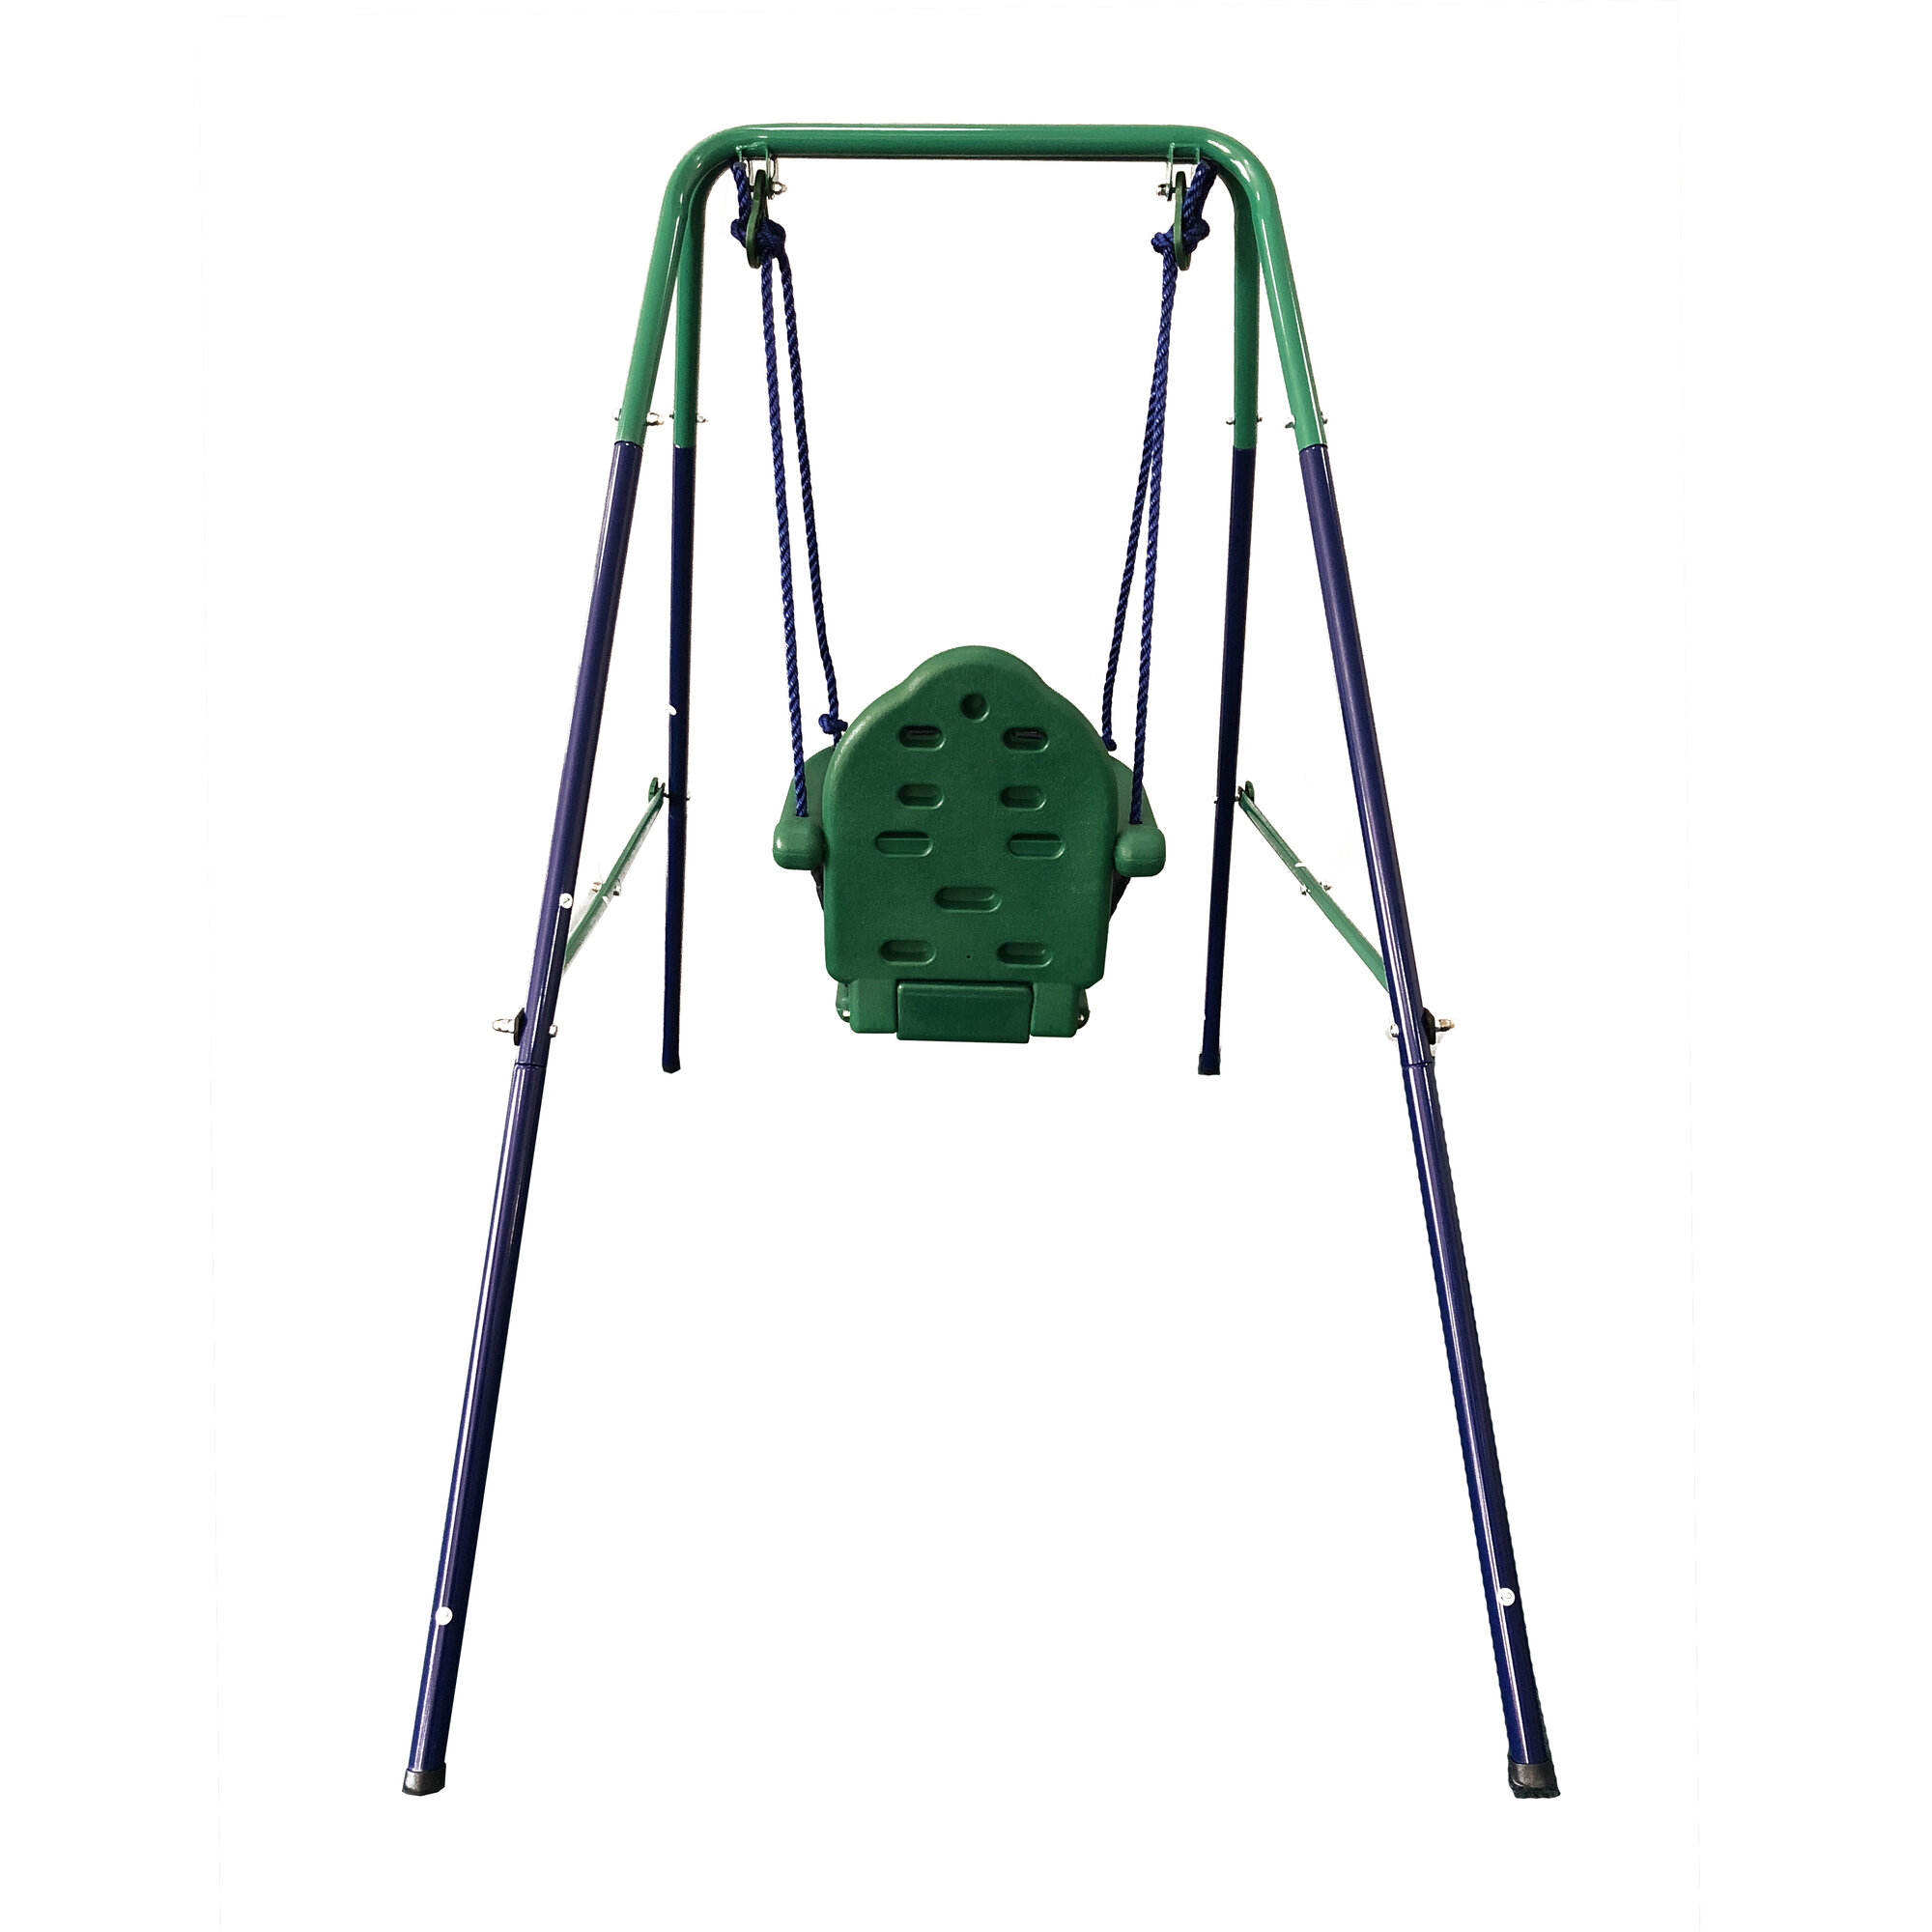 Details About Aleko Toddler Baby Swing Portable Indoor Outdoor Folding Safety Chair Playground